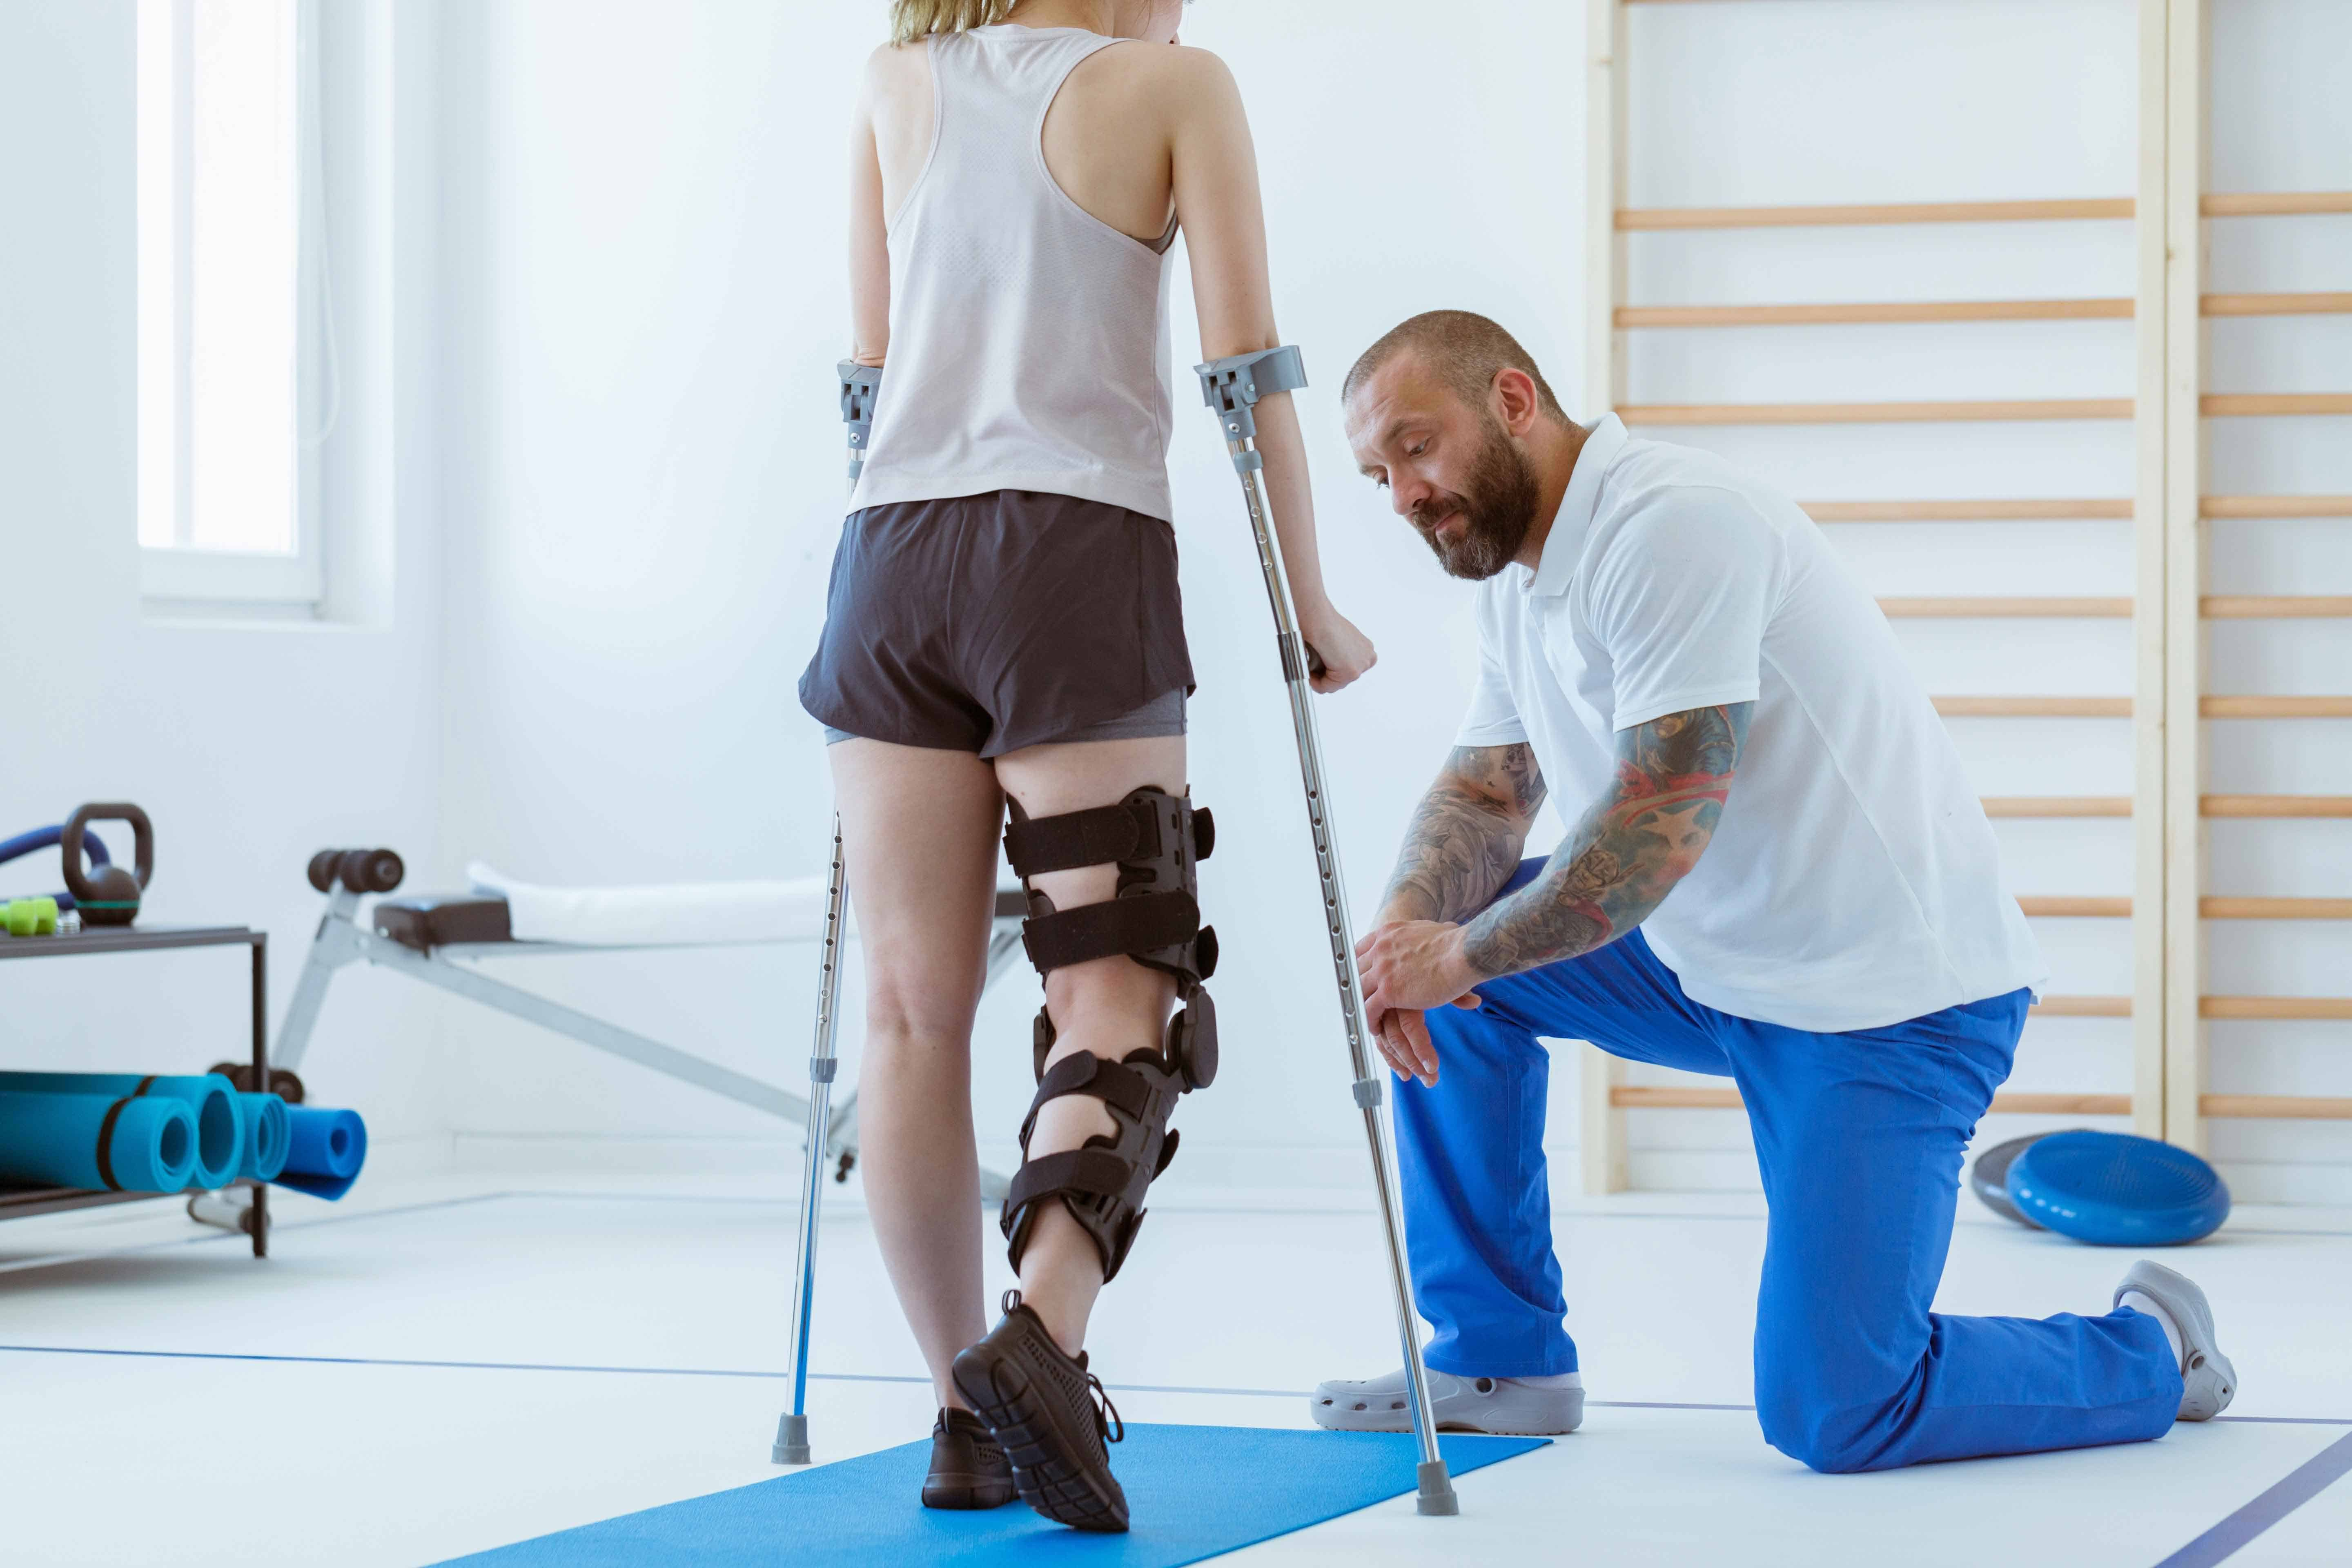 Physical therapist fitting patient with crutches